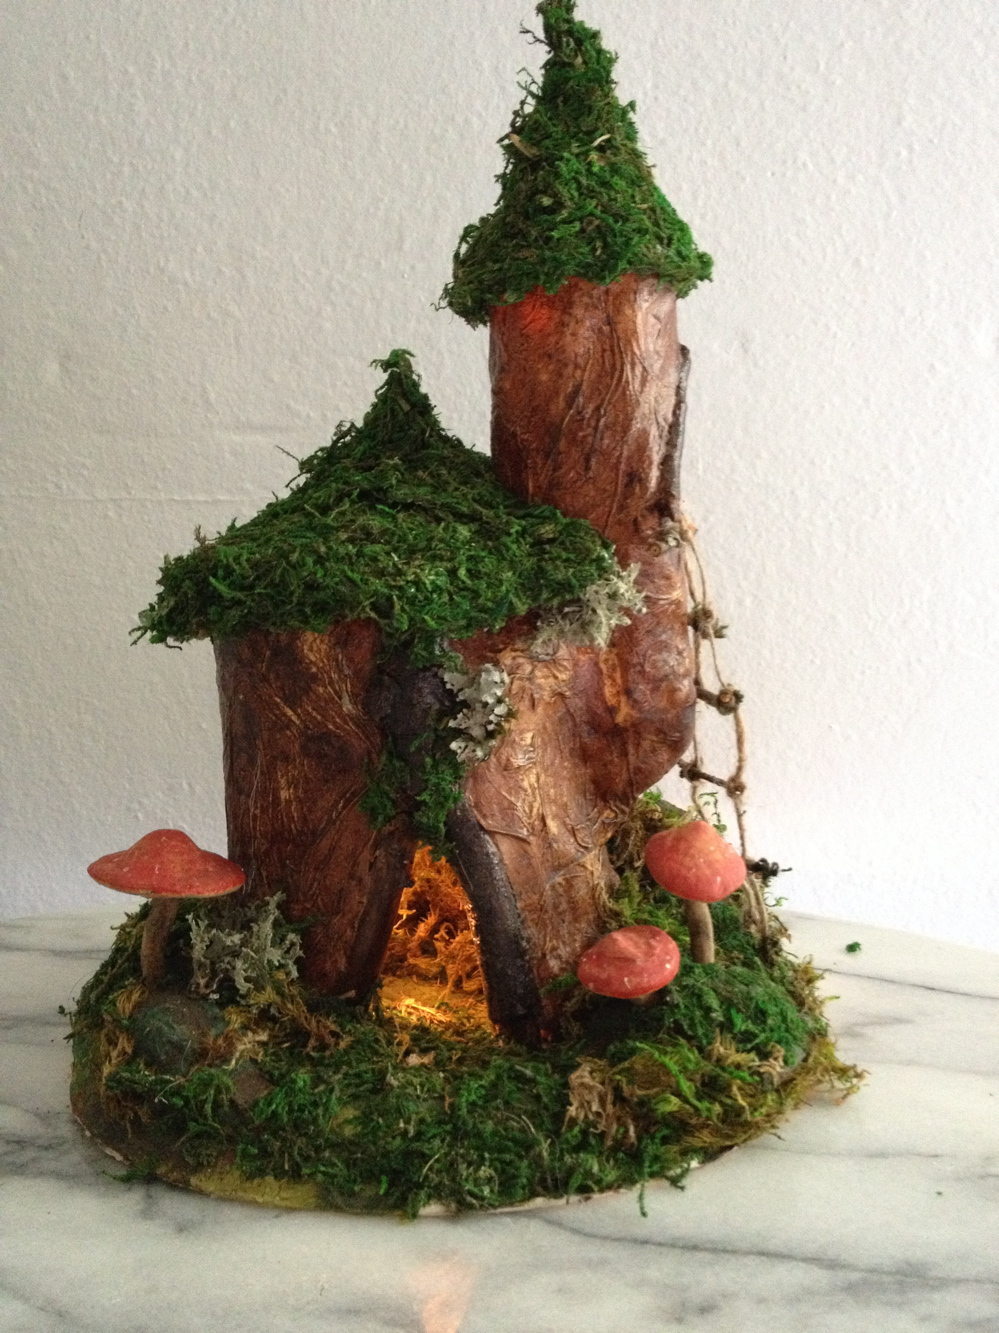 A rustic, mossy forest fairy dwelling